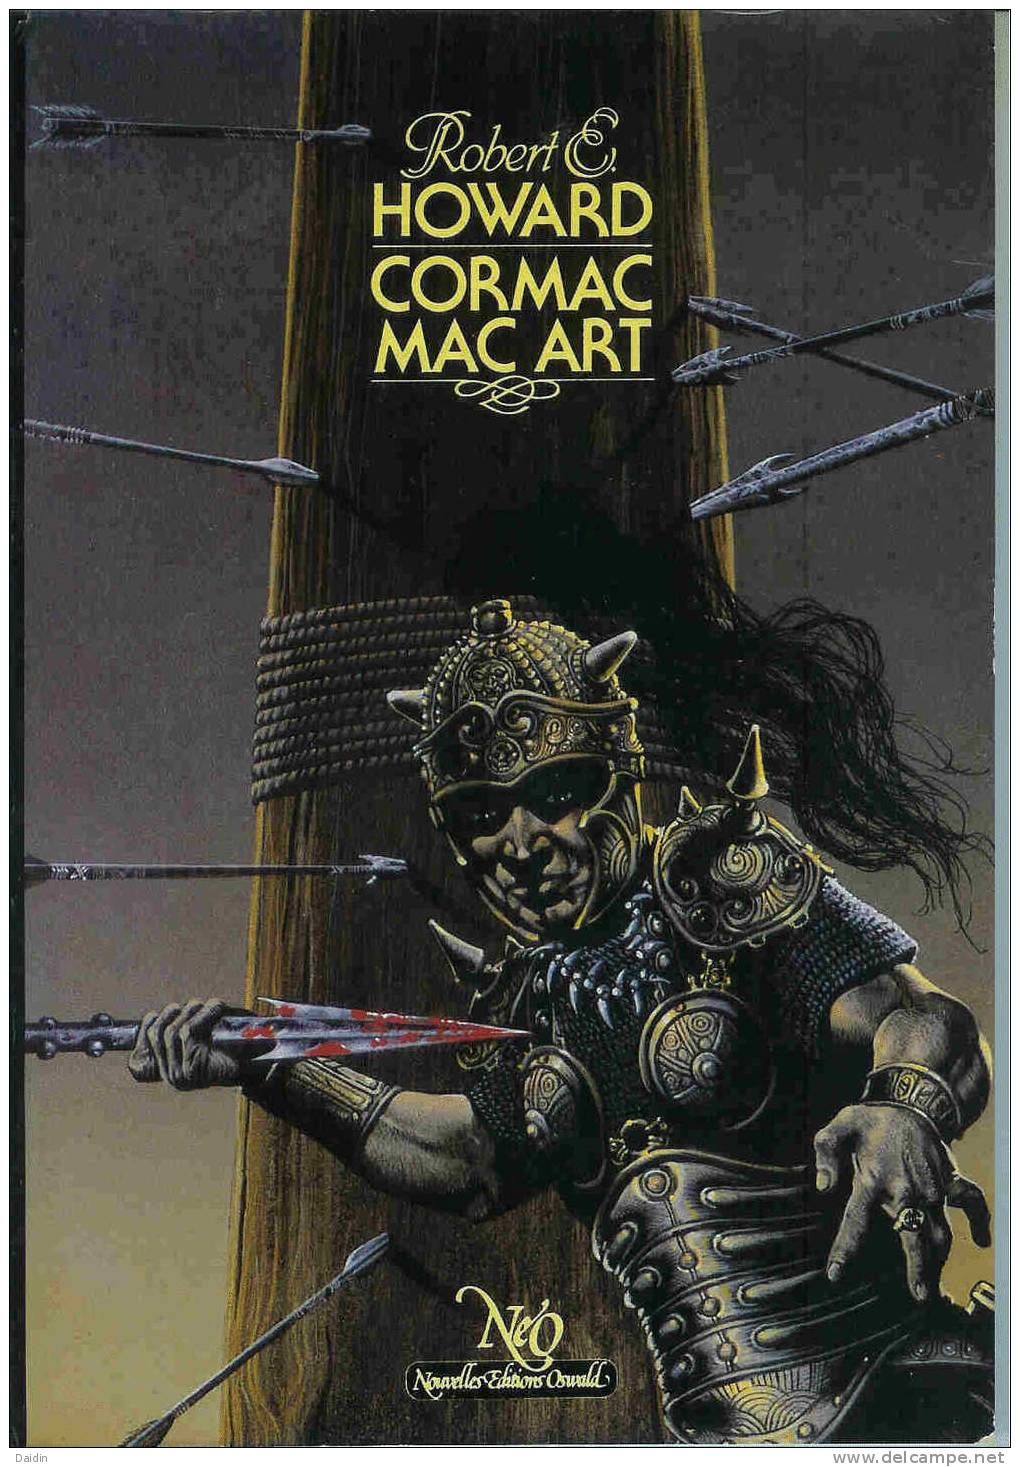 an analysis of the book cormac mac art by robert e howard The temple of abomination (outline) first published in cormac mac art (baen, 1995) recurring: → collections view an alphabetical list of books collecting robert e howard's work, organized by in-print and out-of-print titles click on the collection title to see the contents.